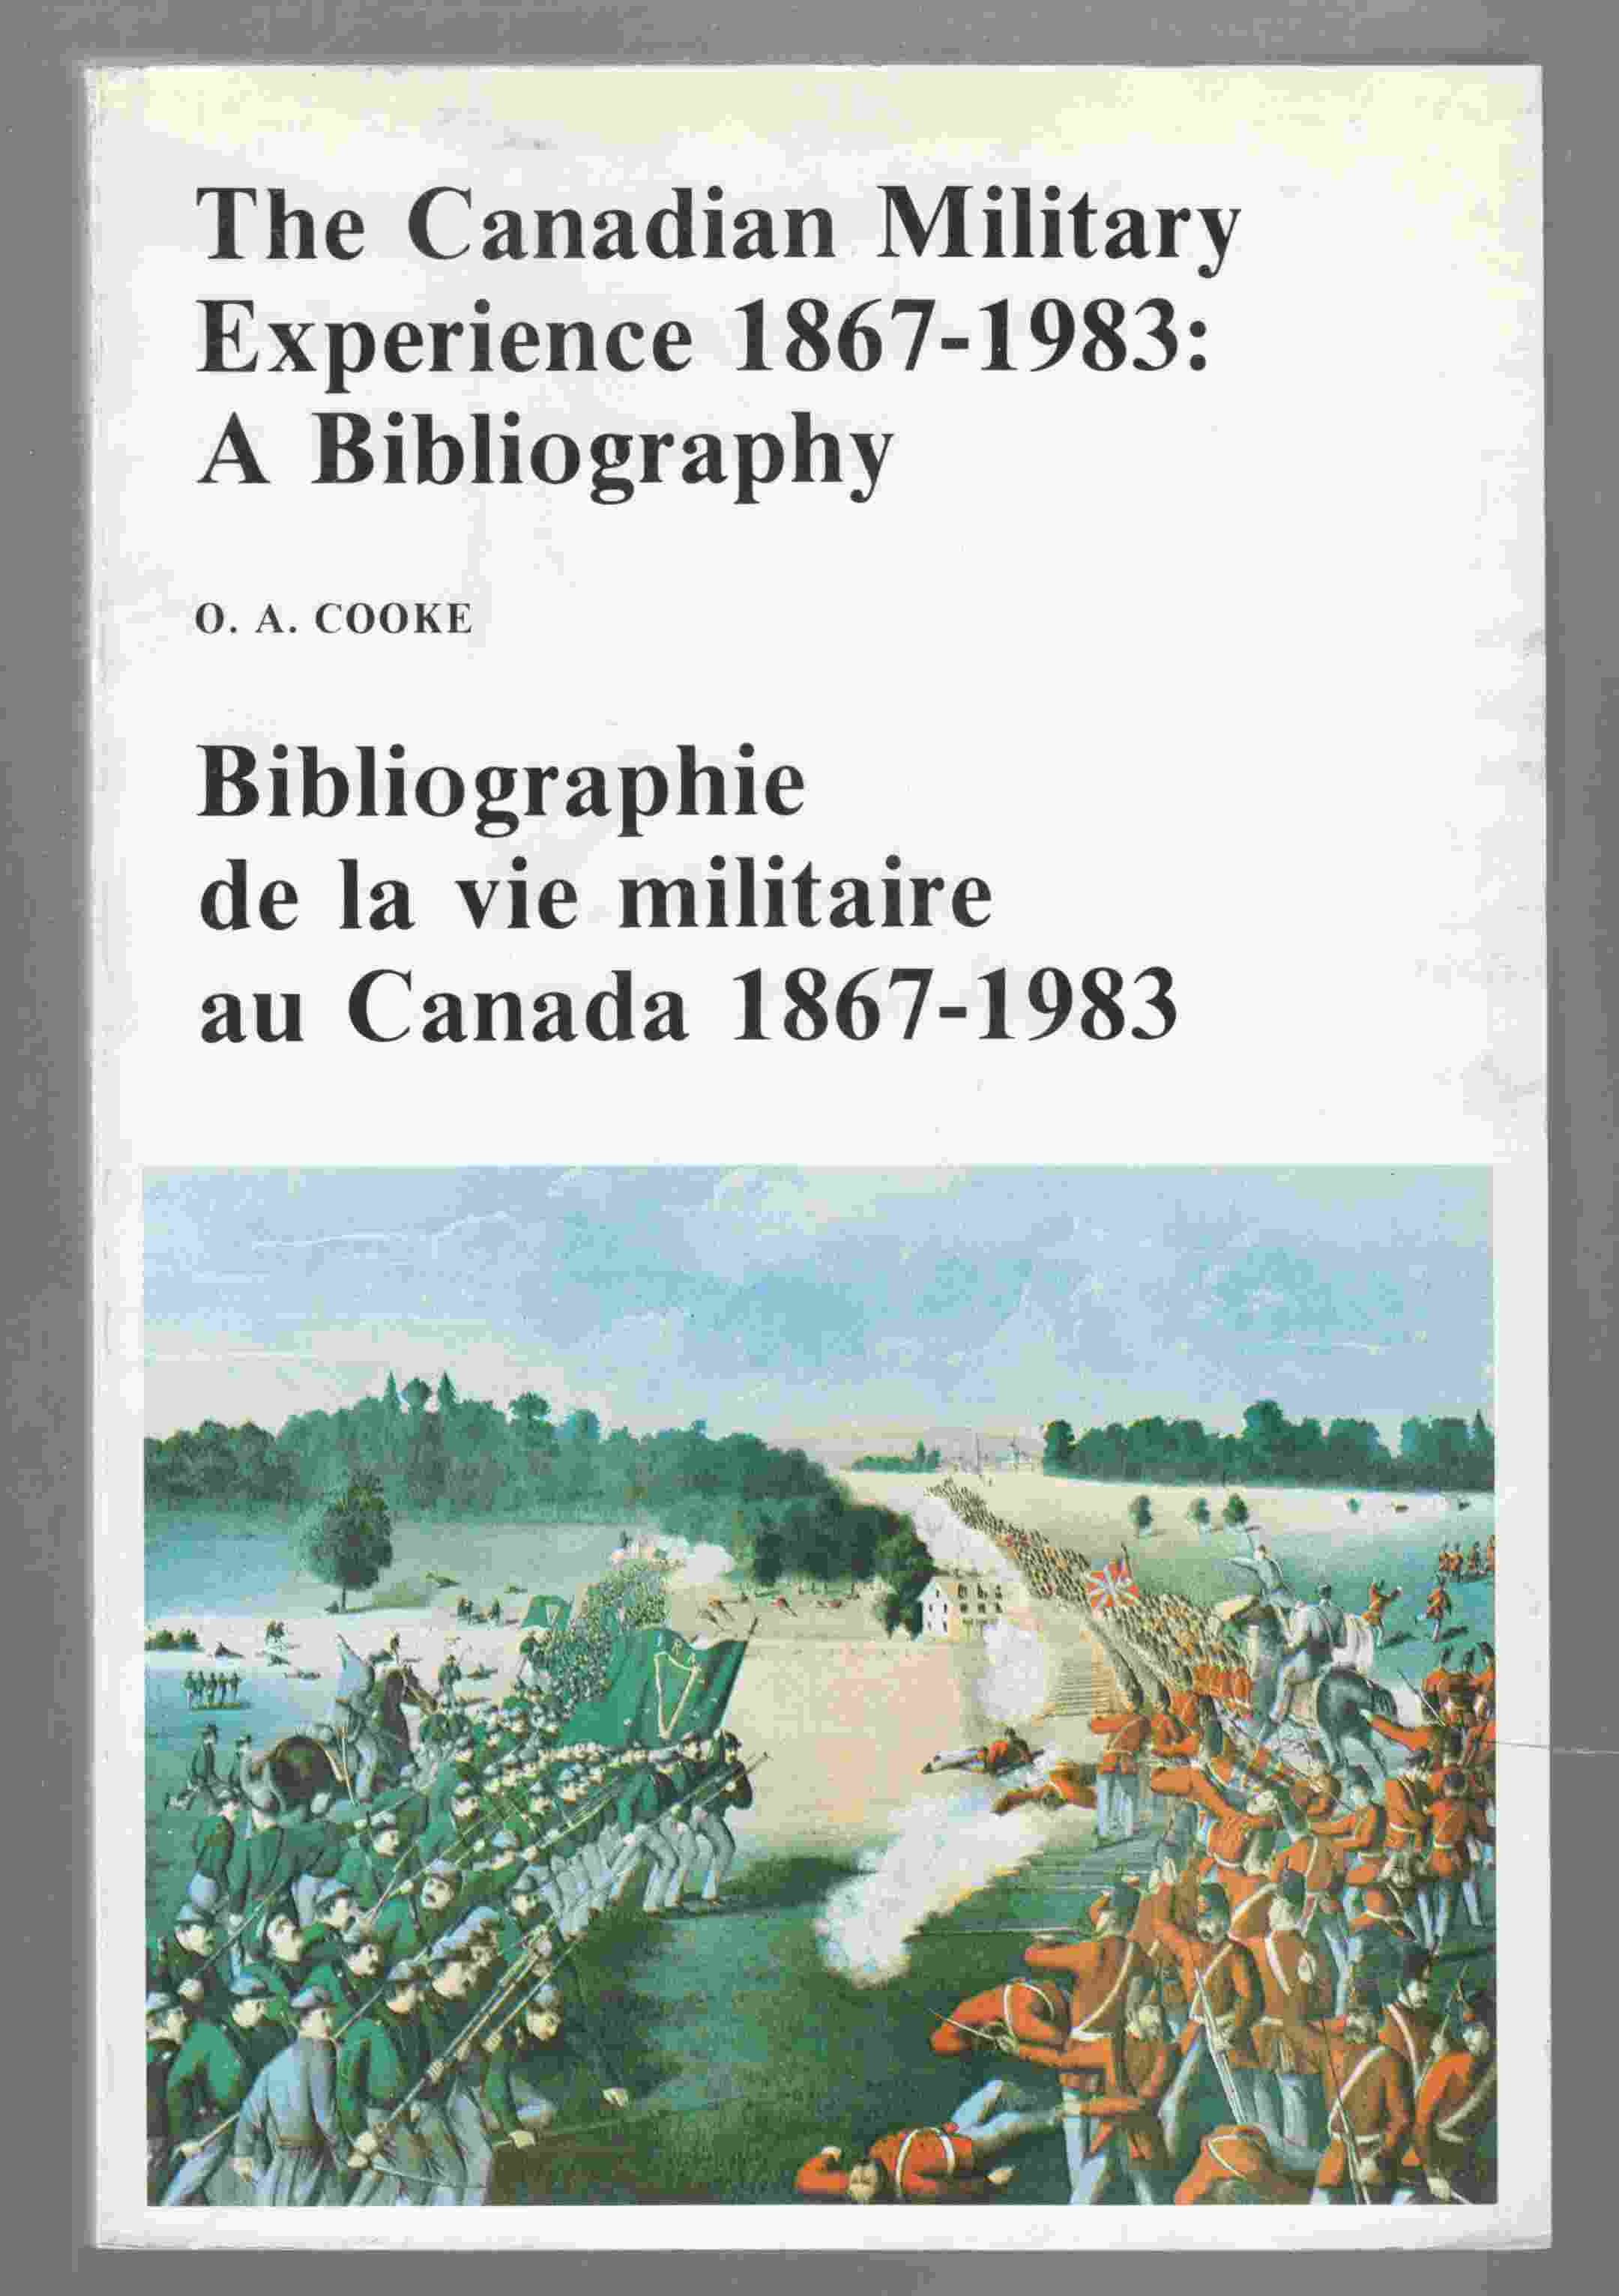 Image for The Canadian Military Experience 1967-1983: a Bibliography / Bibliographie De La Vie Militaire Au Canada 1867-1983